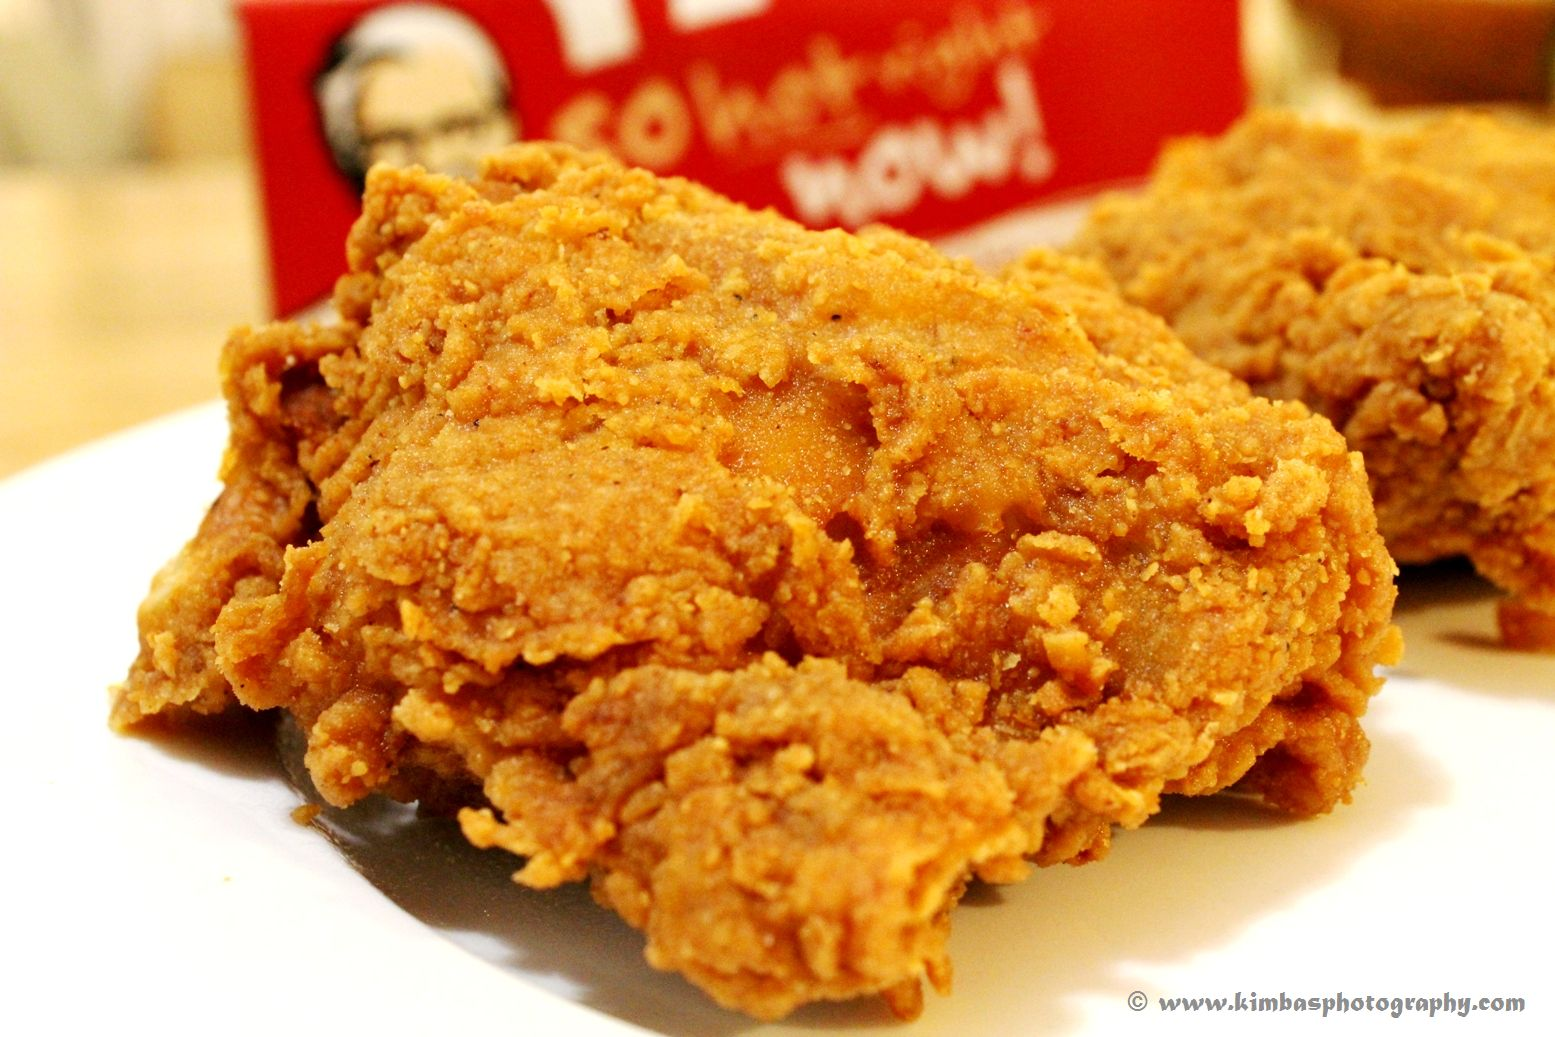 kfc issue public claims police trying to cover up the incident reply